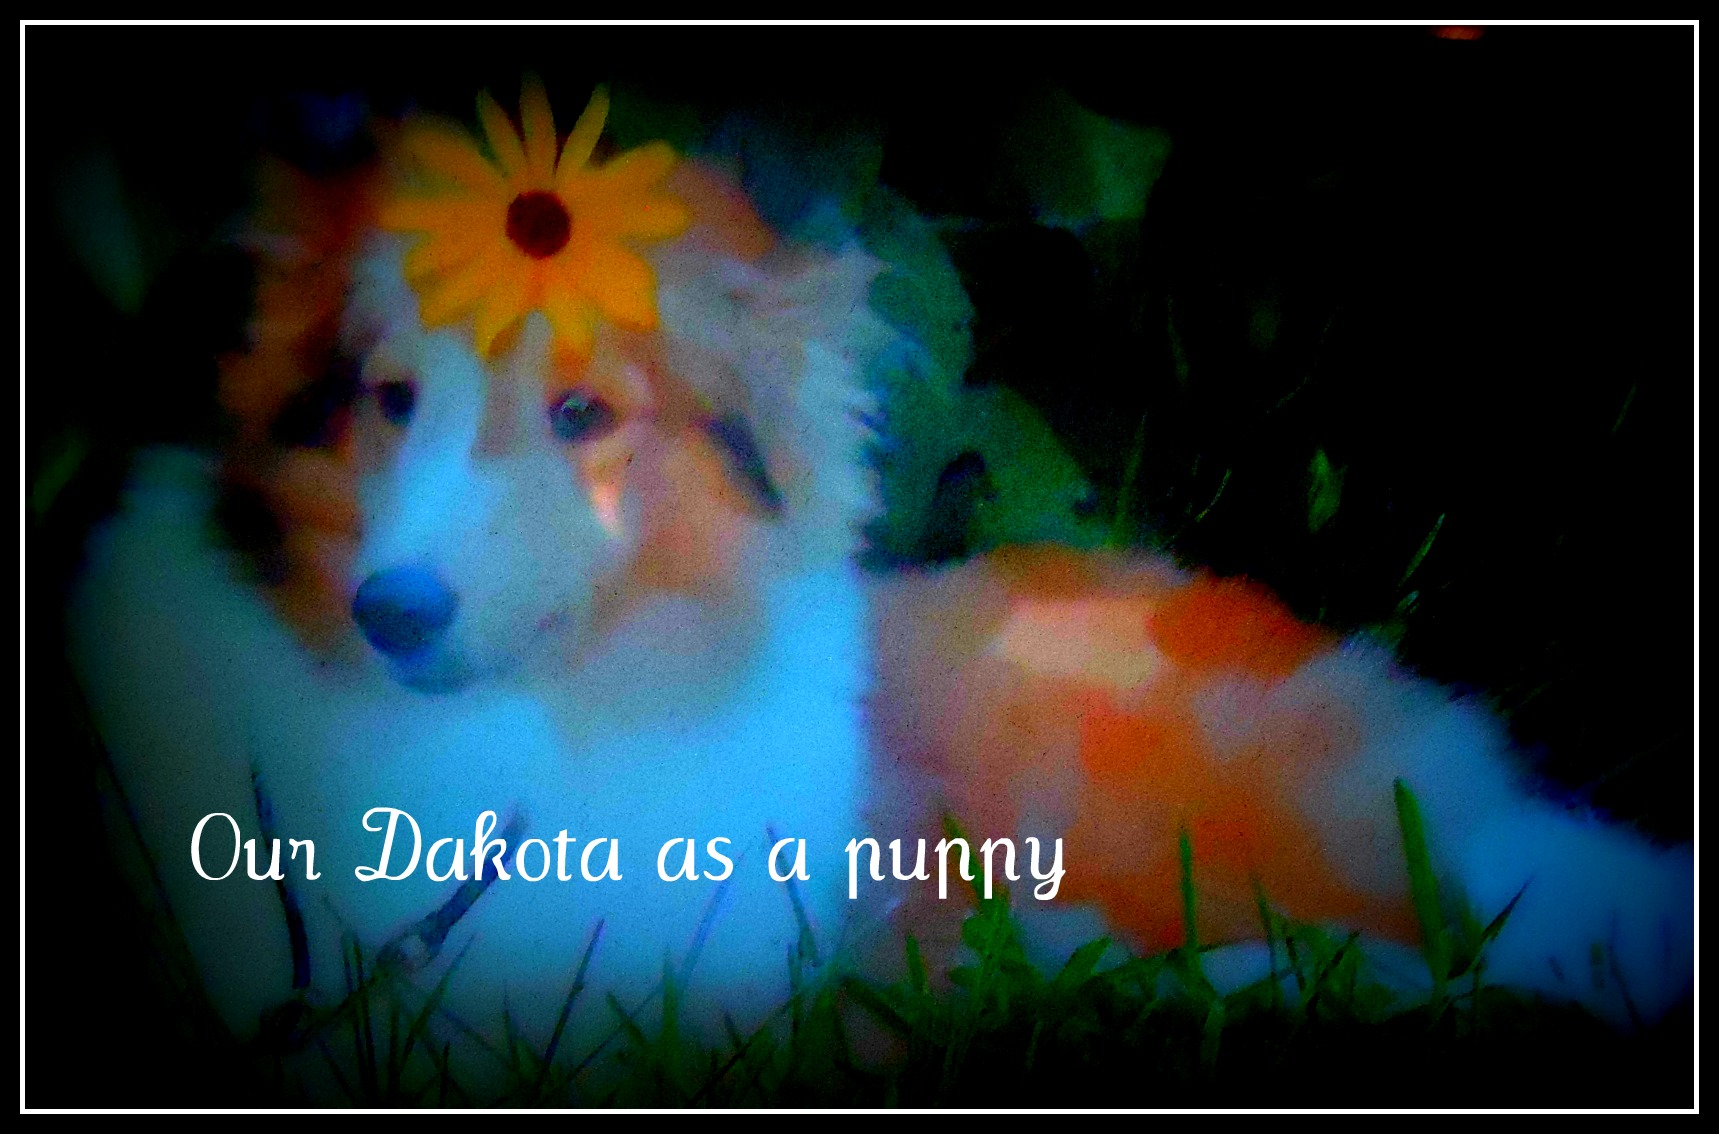 this was the first photo we were given of Dakota from his breeder, Shelia Ellis, before we had met him